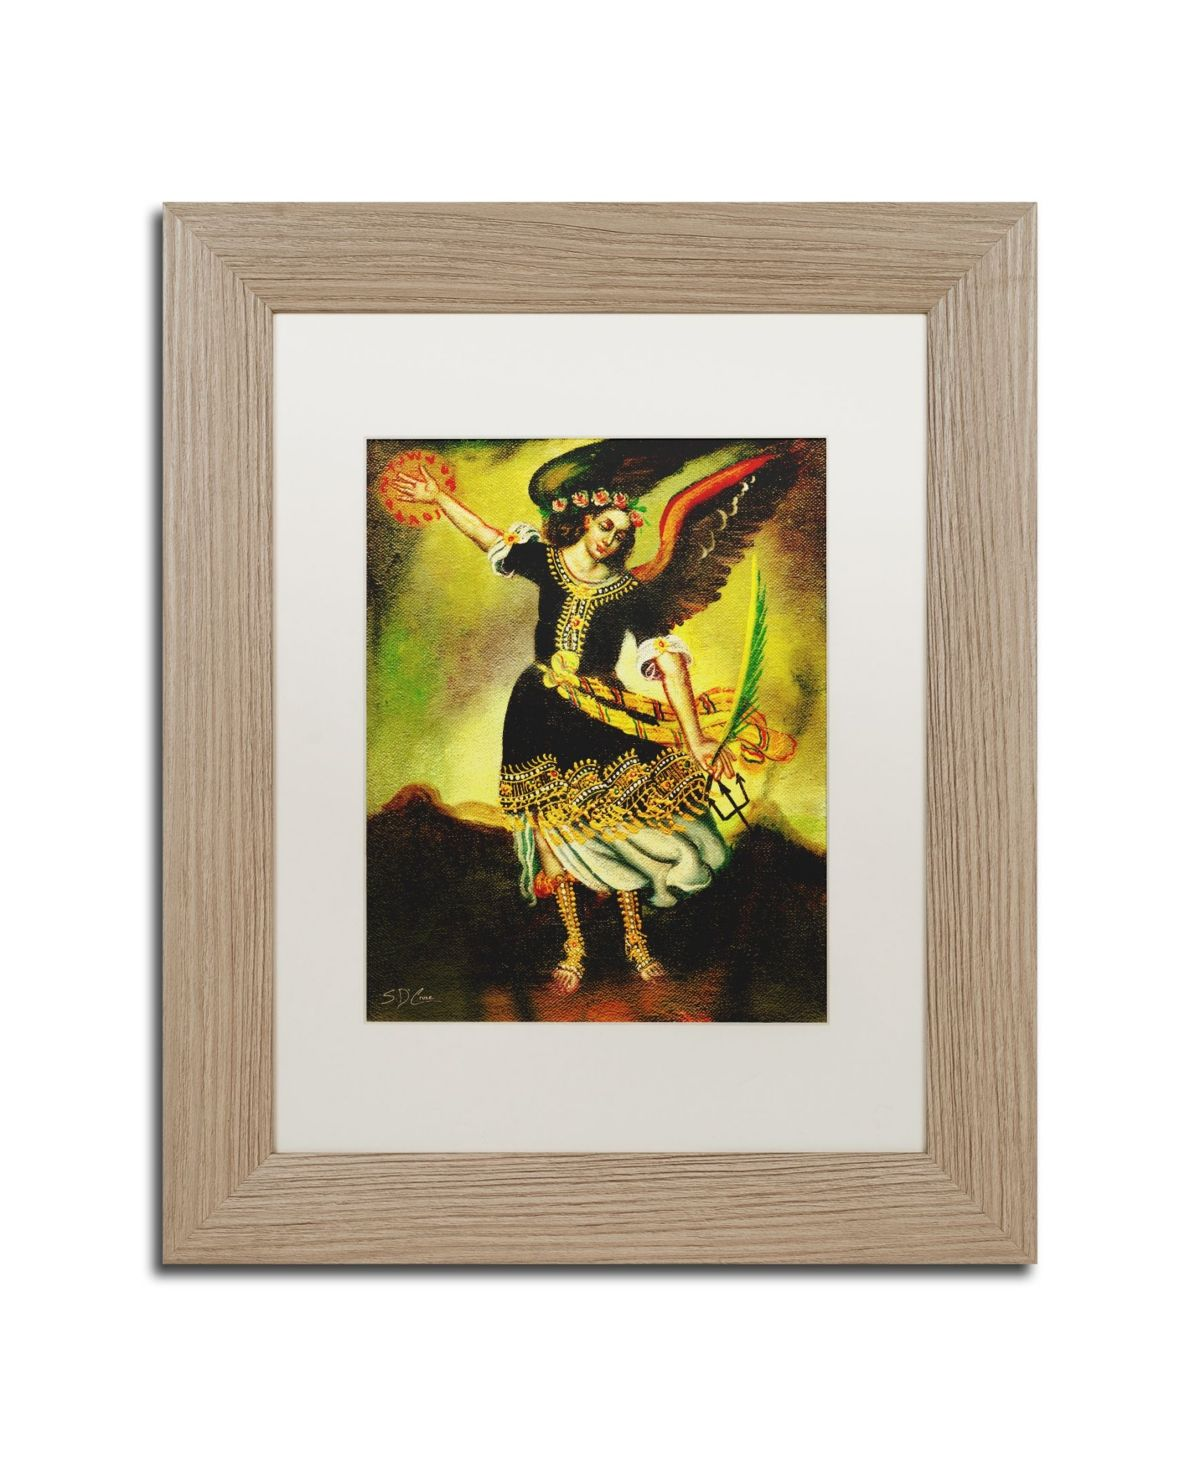 Masters Fine Art An Angel Matted Framed Art 11 X 14 Multi Trademark Art Trademark Fine Art Framed Art